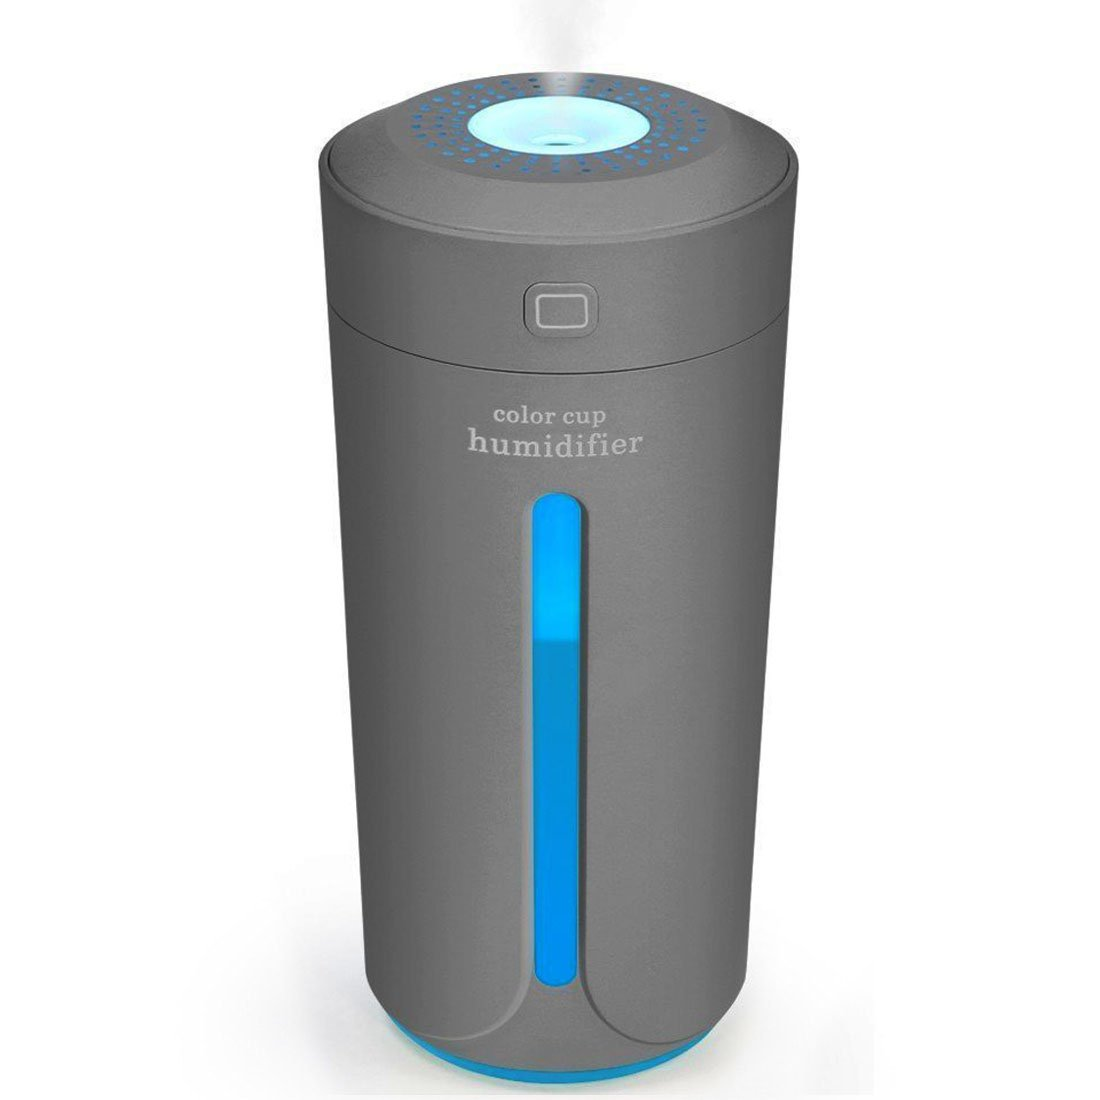 MJDUO Travel Humidifier Cup,Portable Mini Humidifier for Cars Office Desk Home Babies kids Bedroom. Air Humidifiers Purifier 7 Color LED Lights Ultrasonic USB No Noise(Gray)